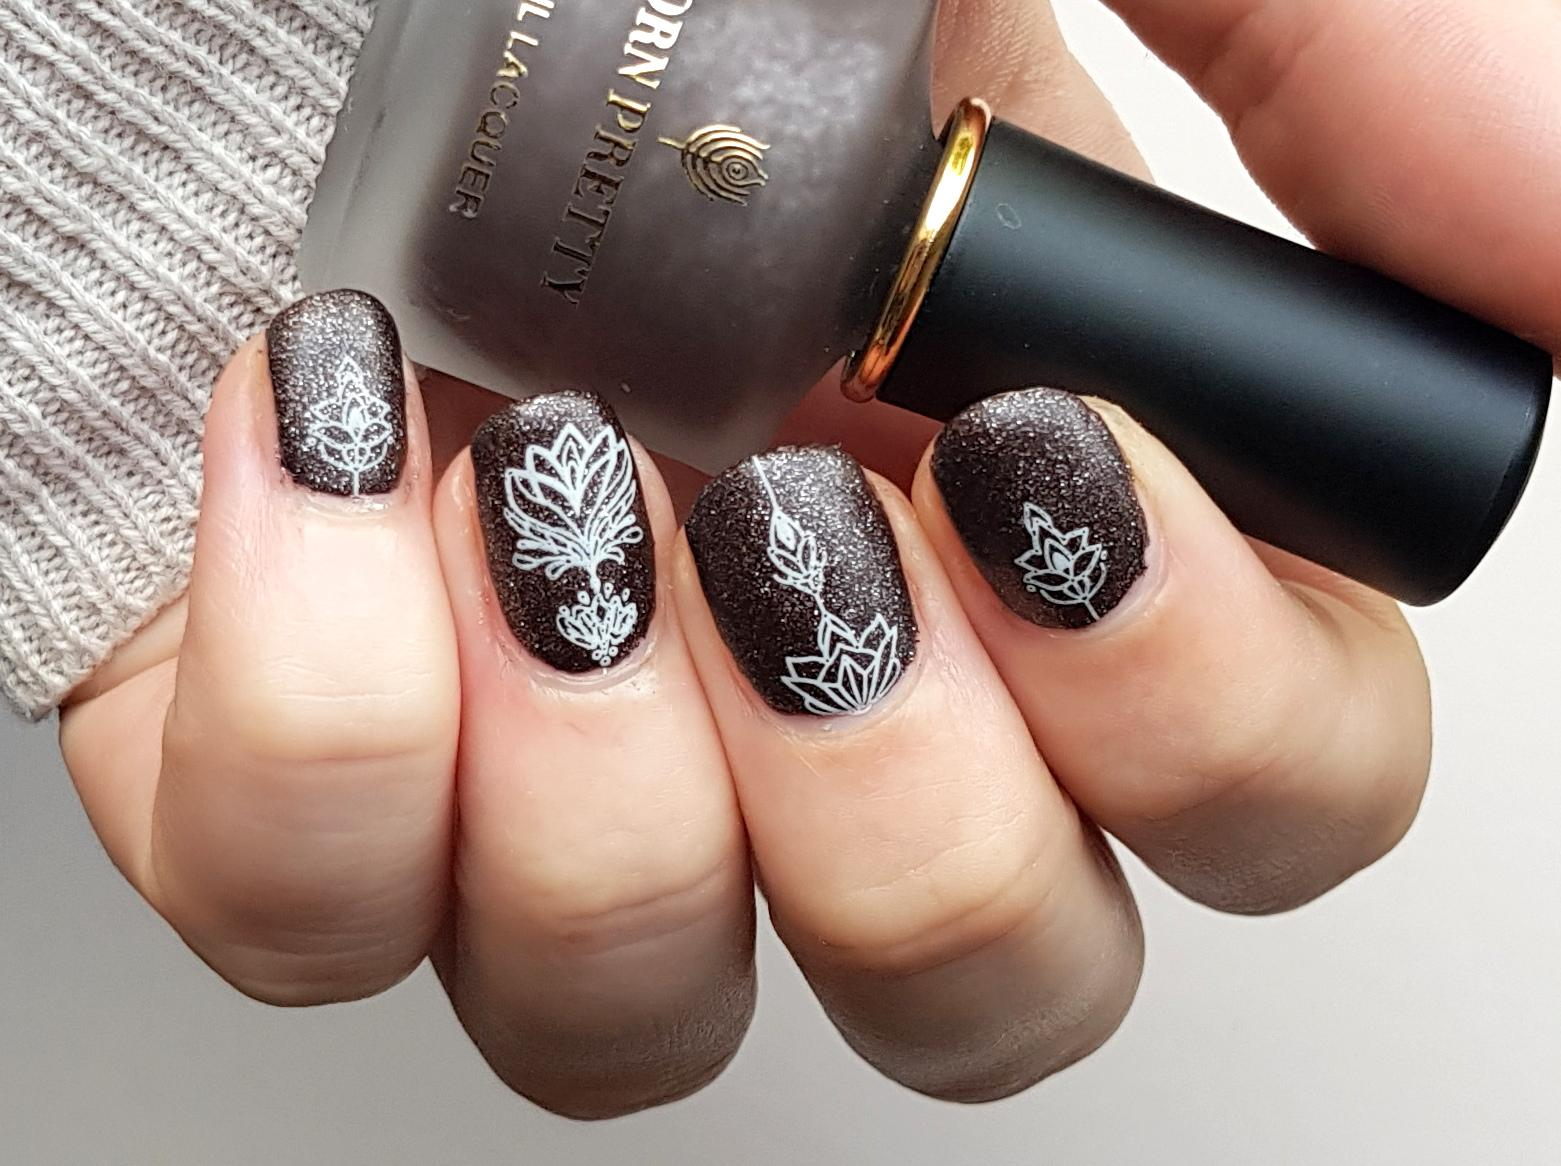 Naldesign Stamping White Ornaments